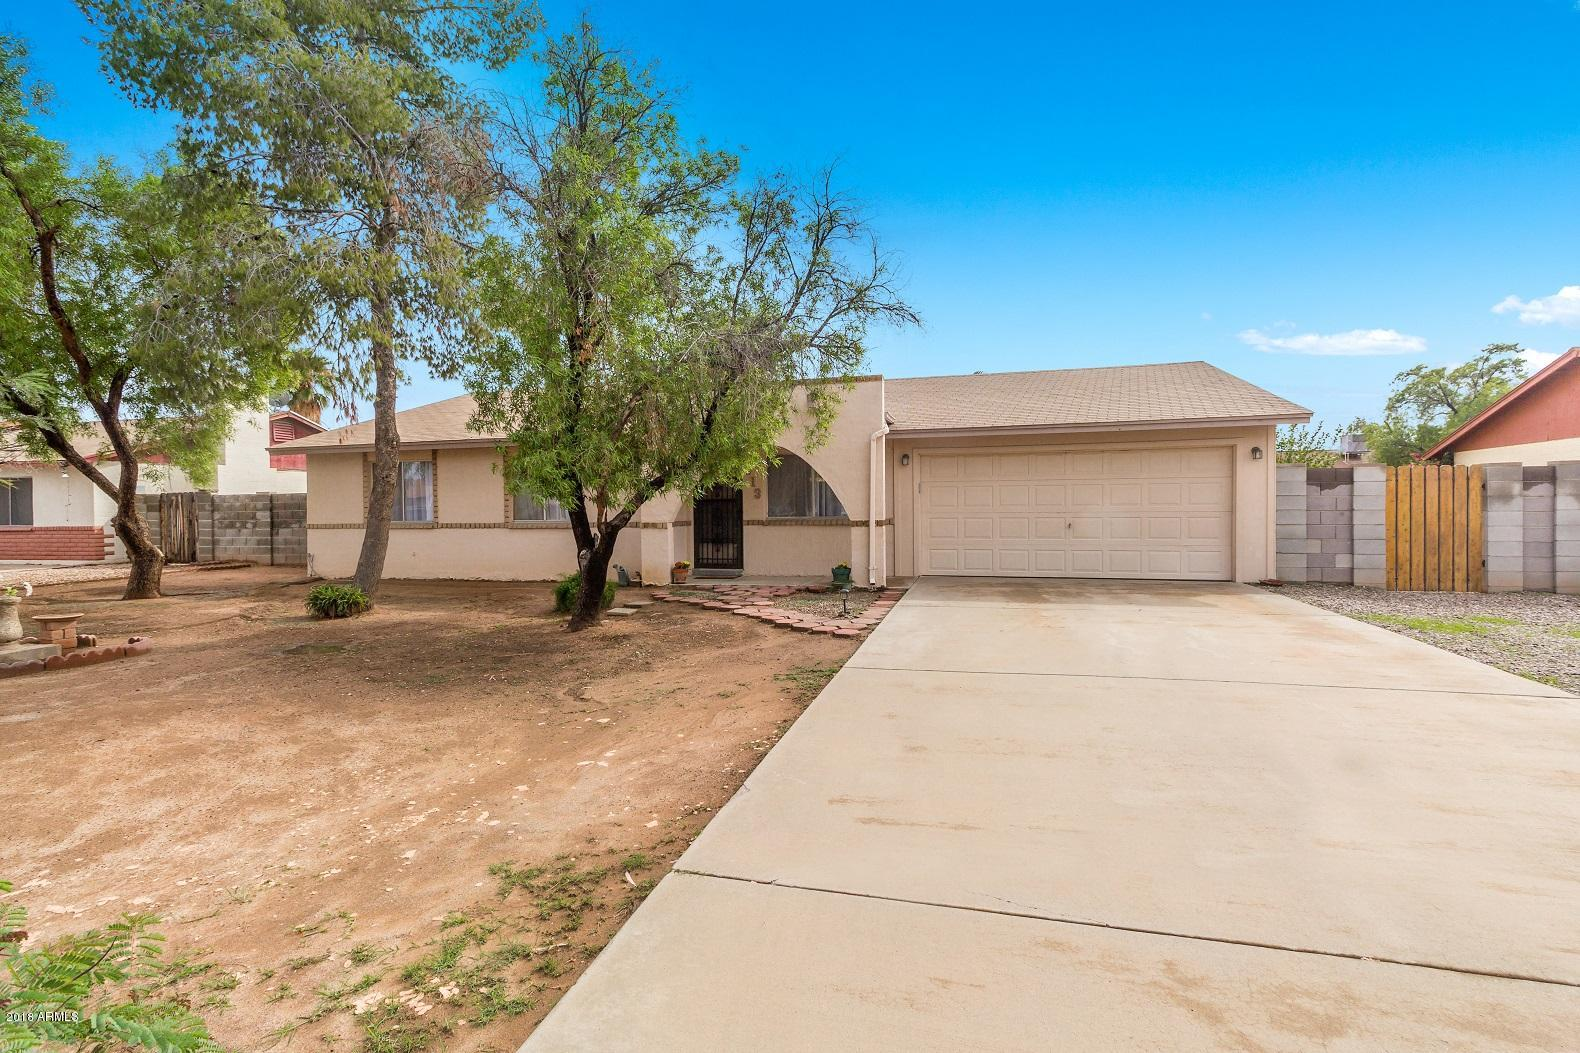 Photo for 513 E Vekol Road, Casa Grande, AZ 85122 (MLS # 5833646)